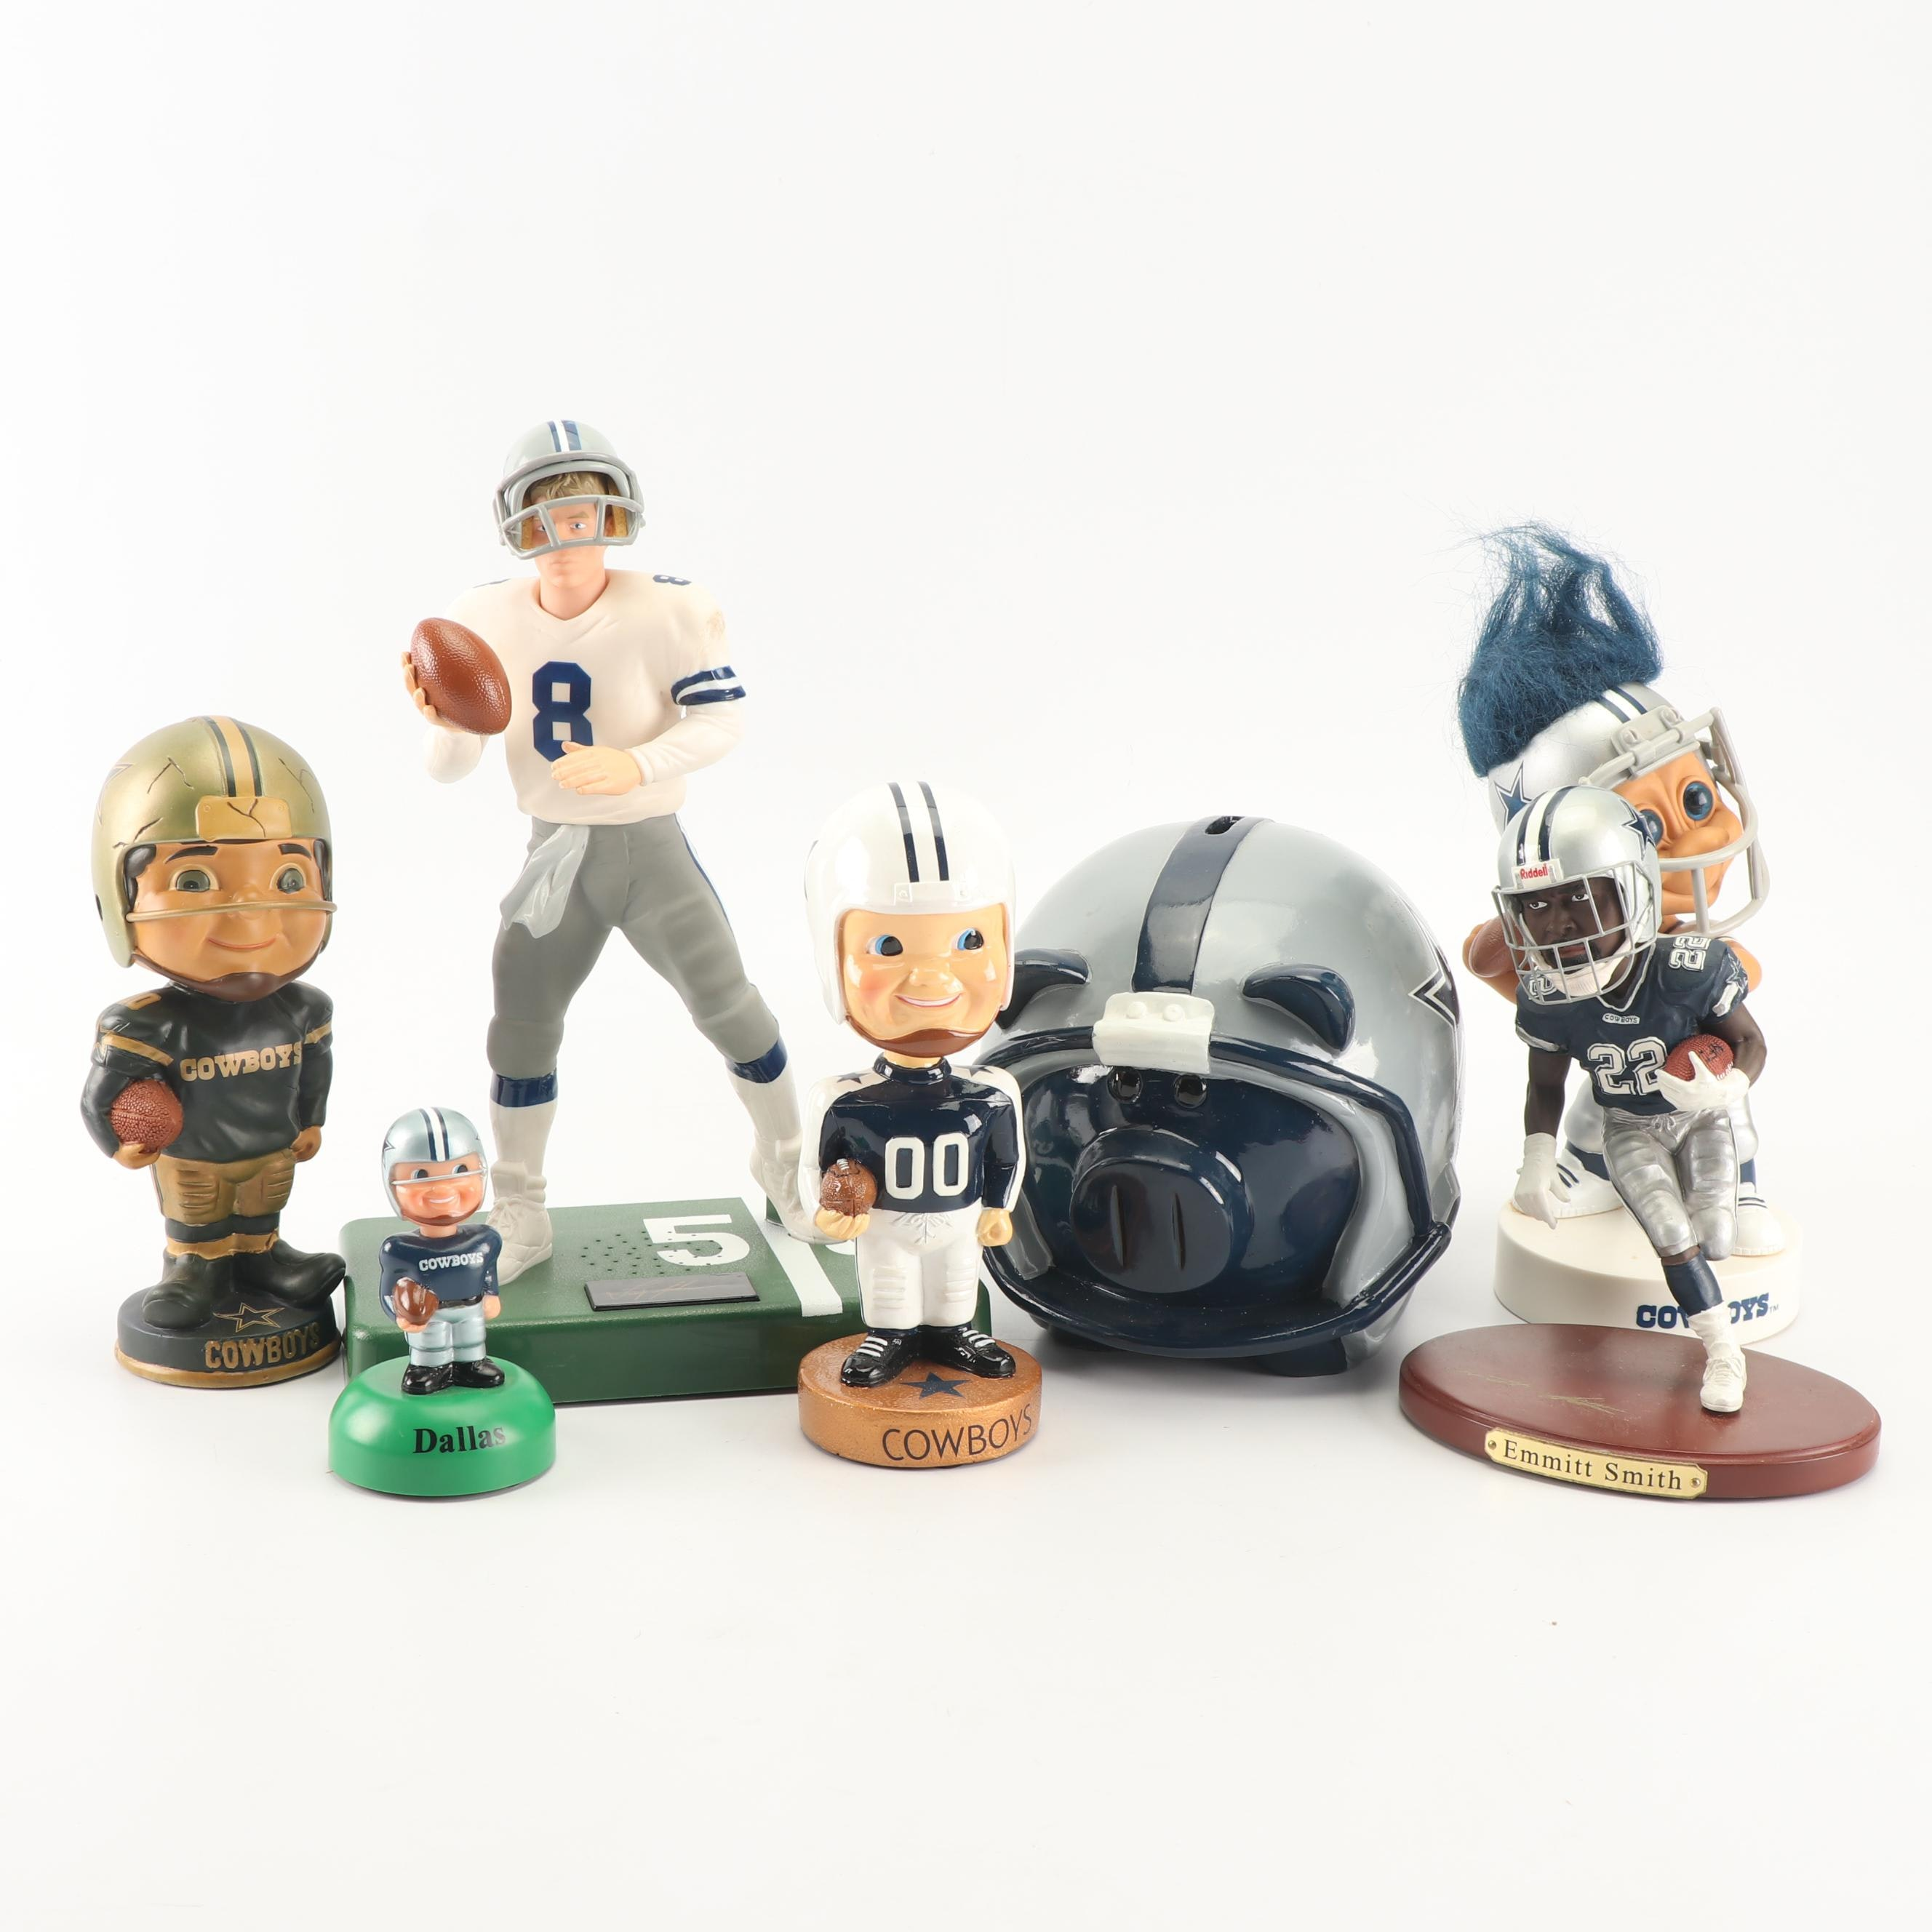 Dallas Cowboy's Bobbleheads and Figurines Including Emmitt Smith